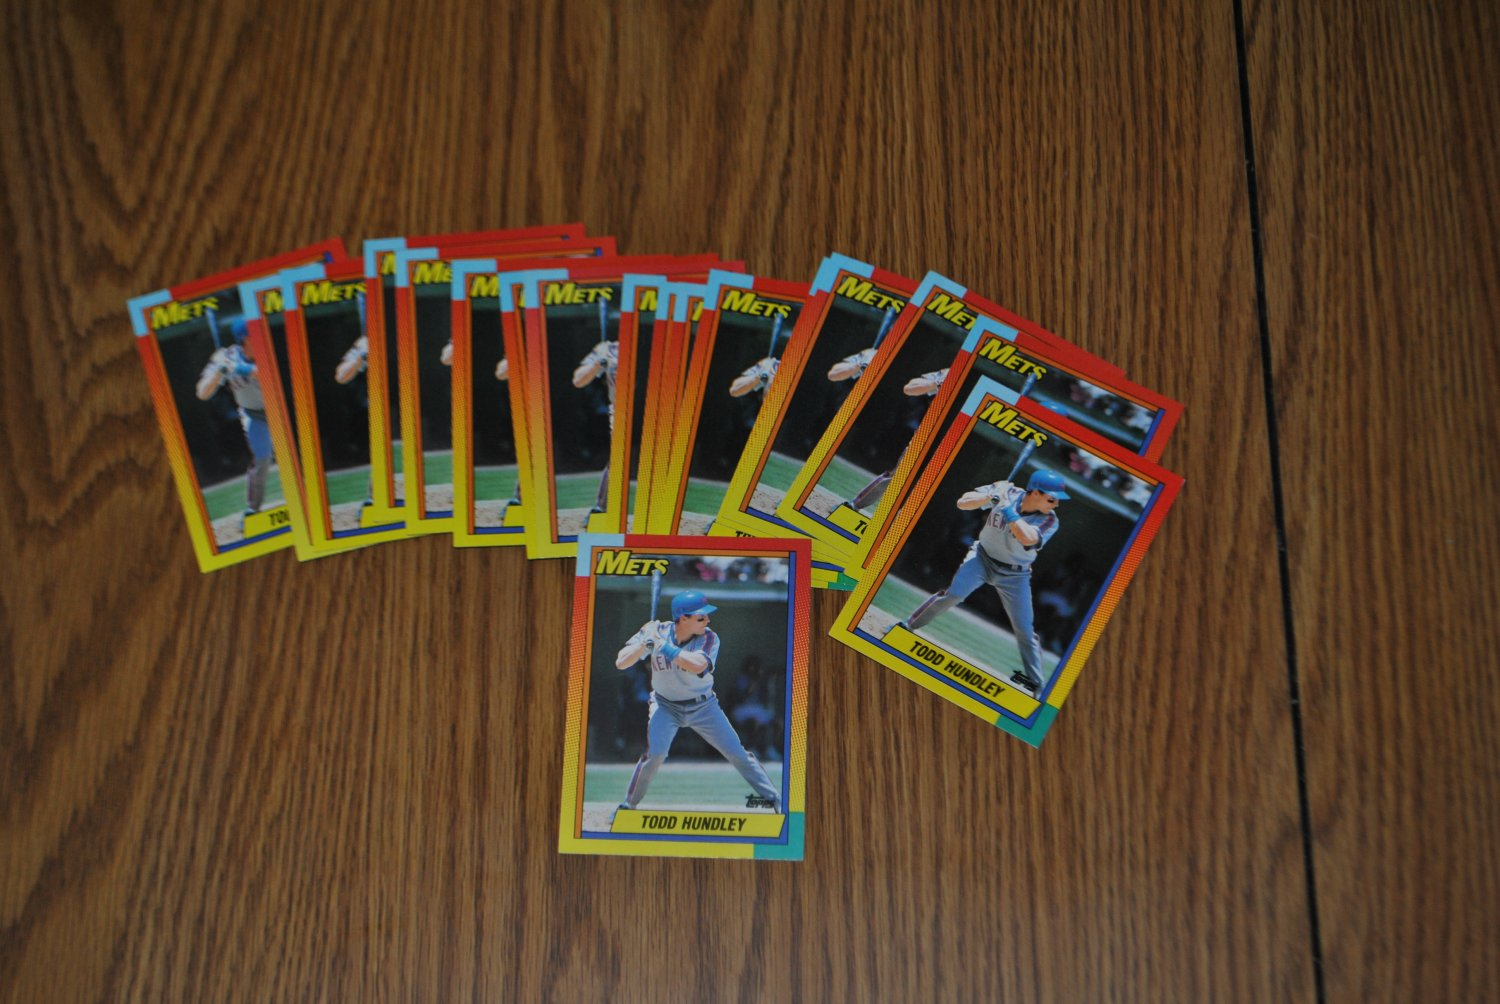 1990 topps traded todd hundley rookie card lot.